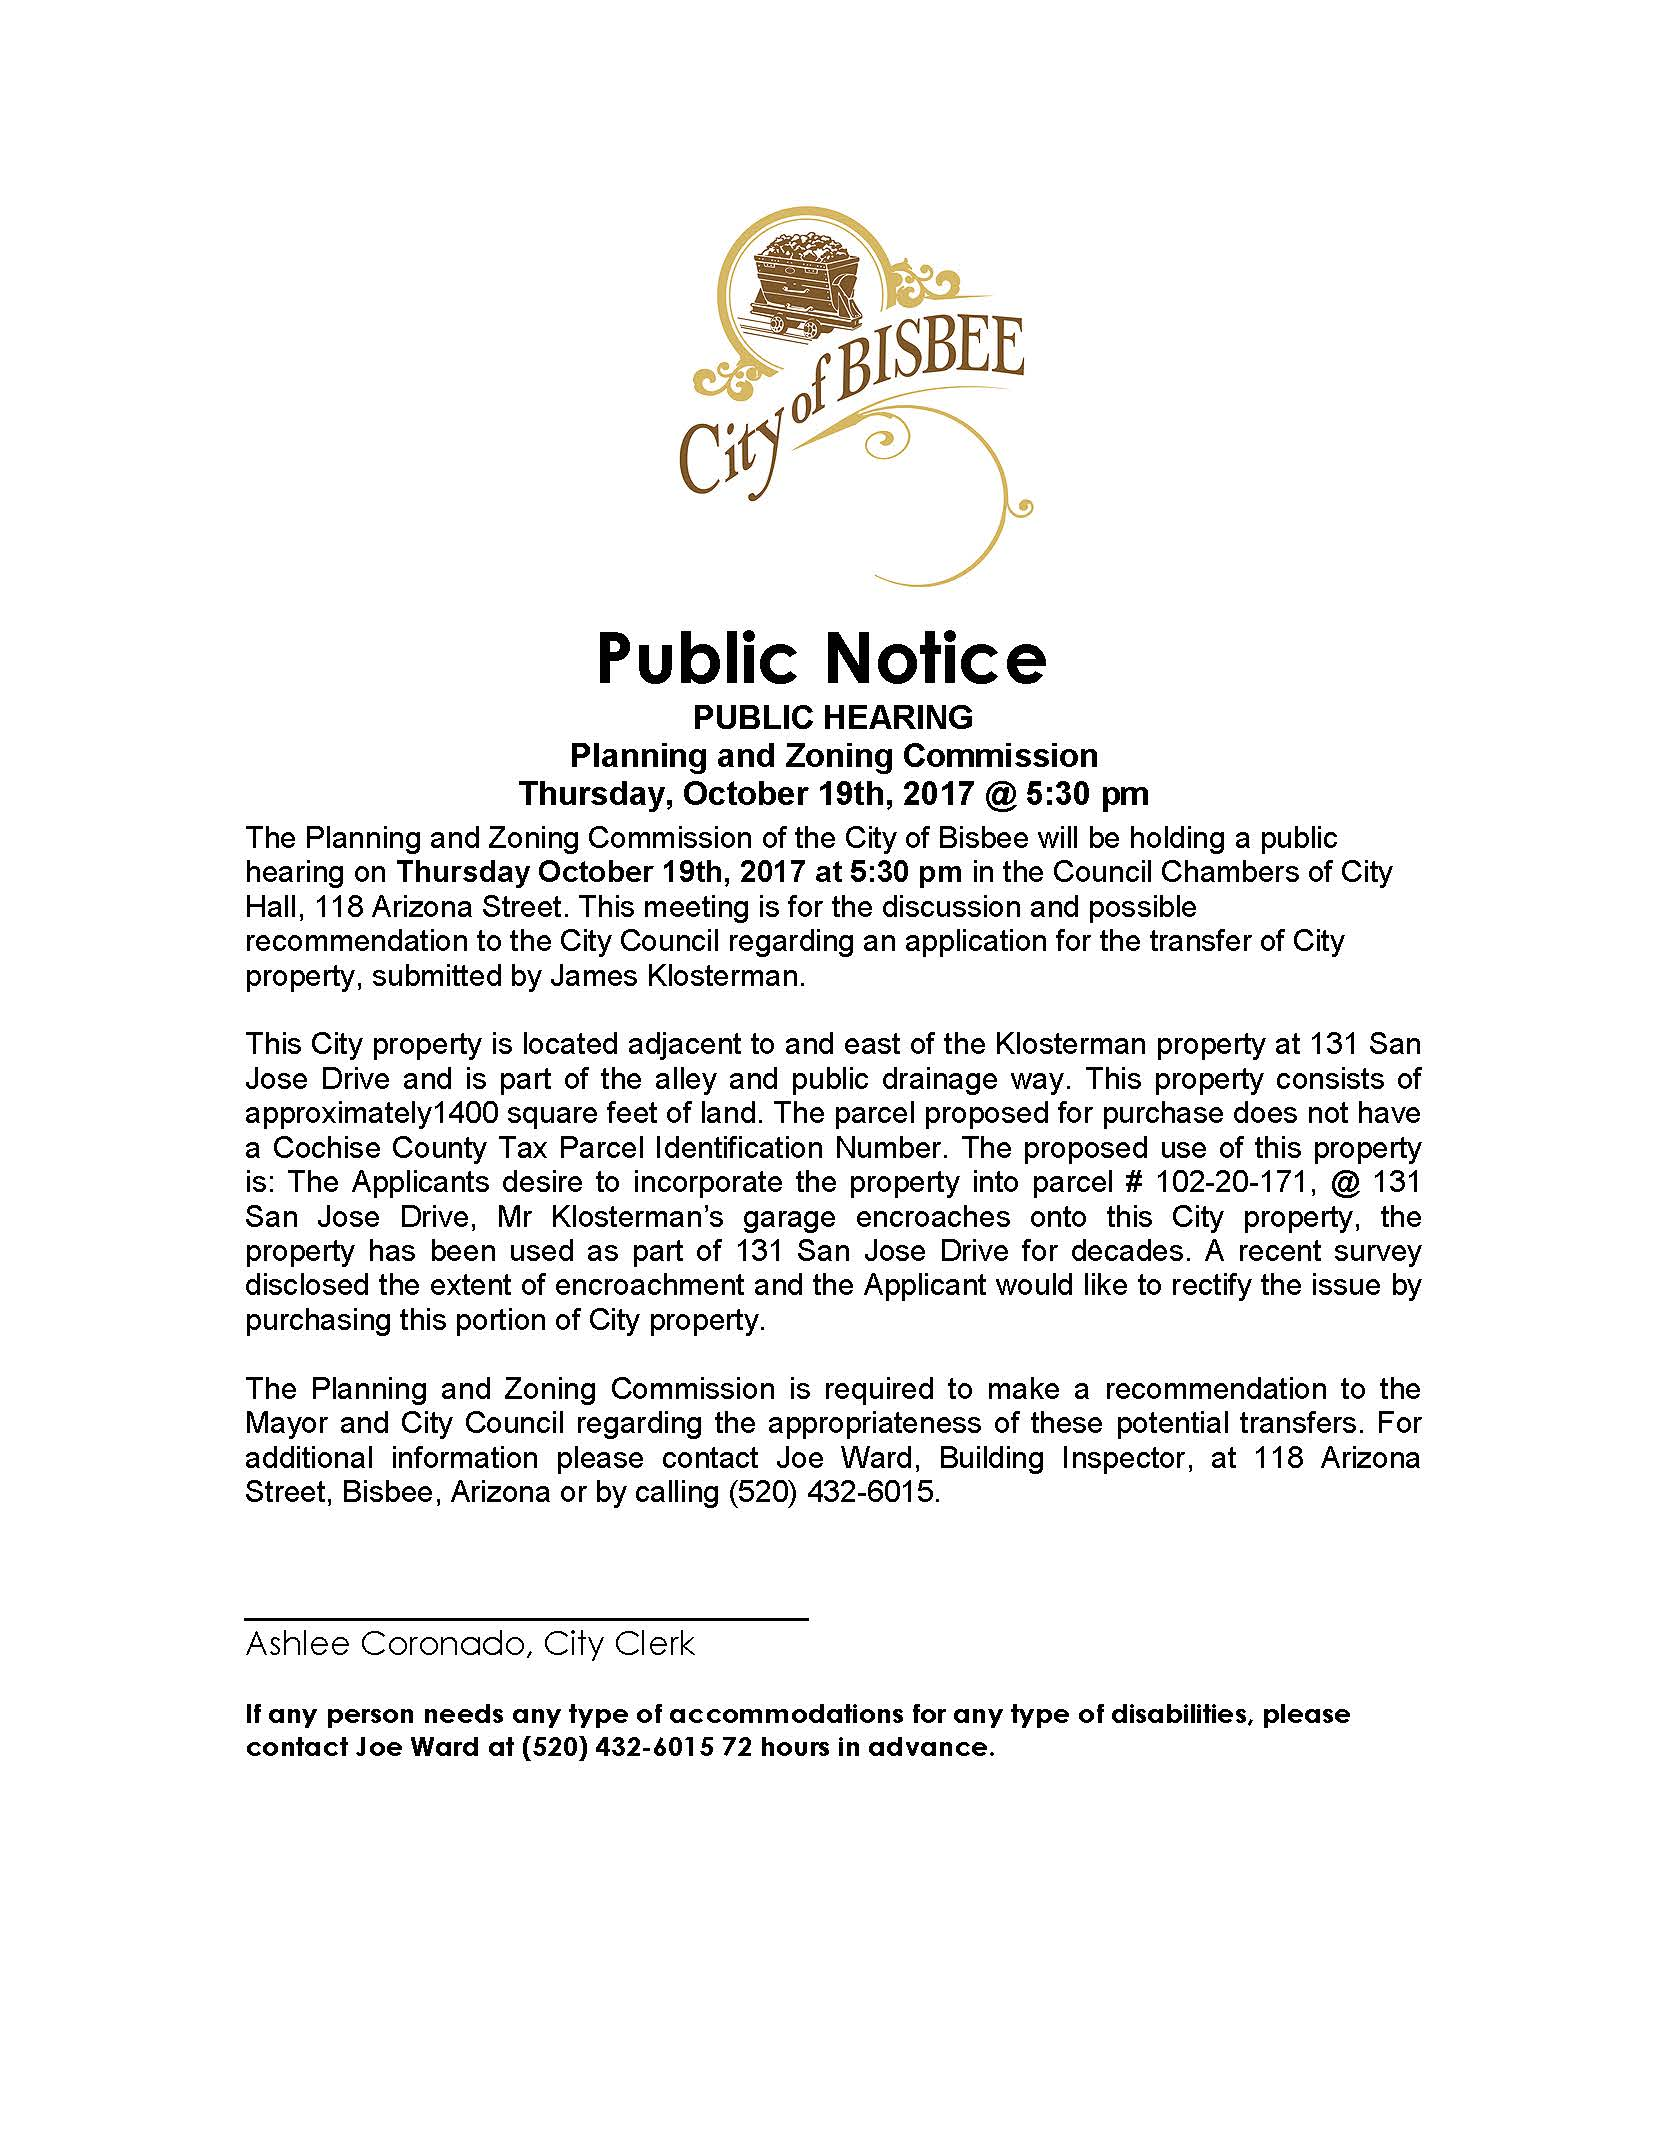 Public Notice-- pZ meeting klosterman